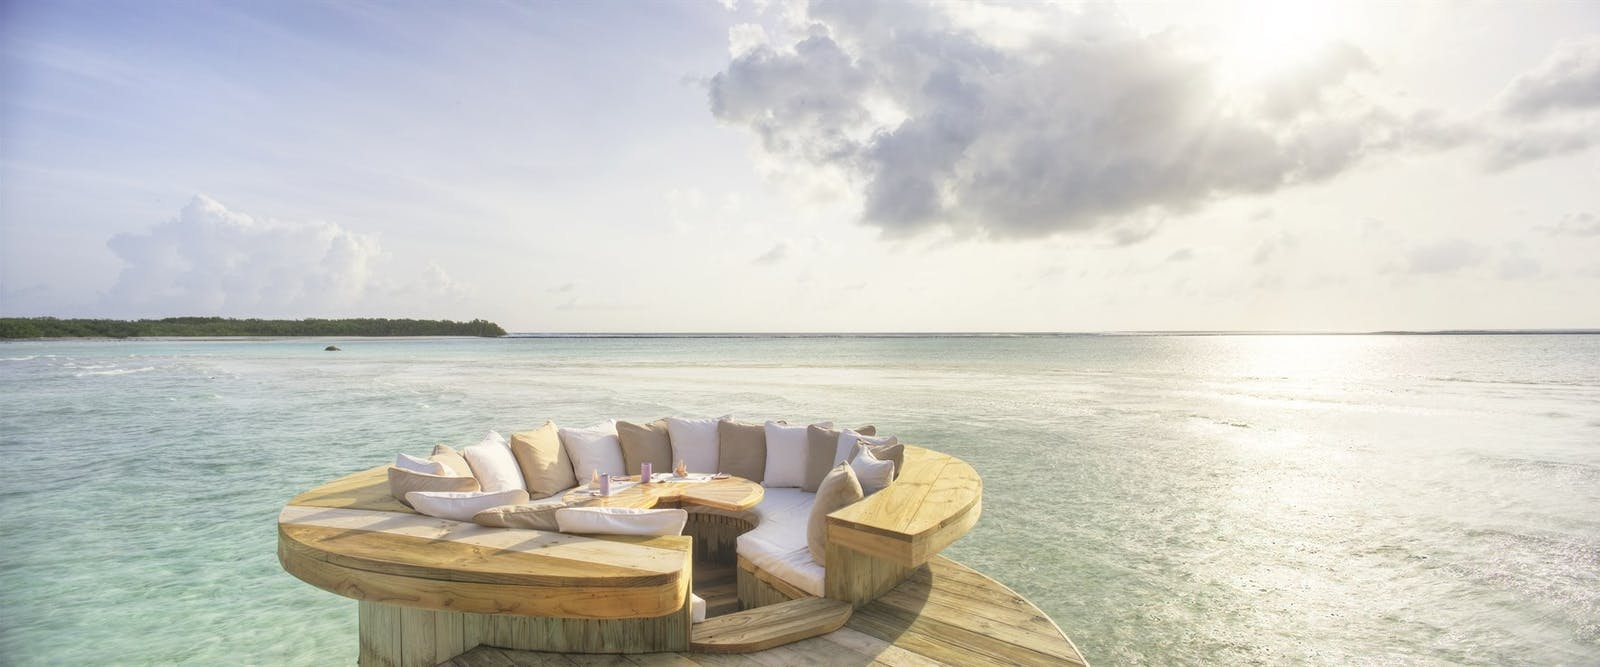 Three-Bedroom Water Reserve Sunken Seating at Soneva Jani, Maldives, Indian Ocean